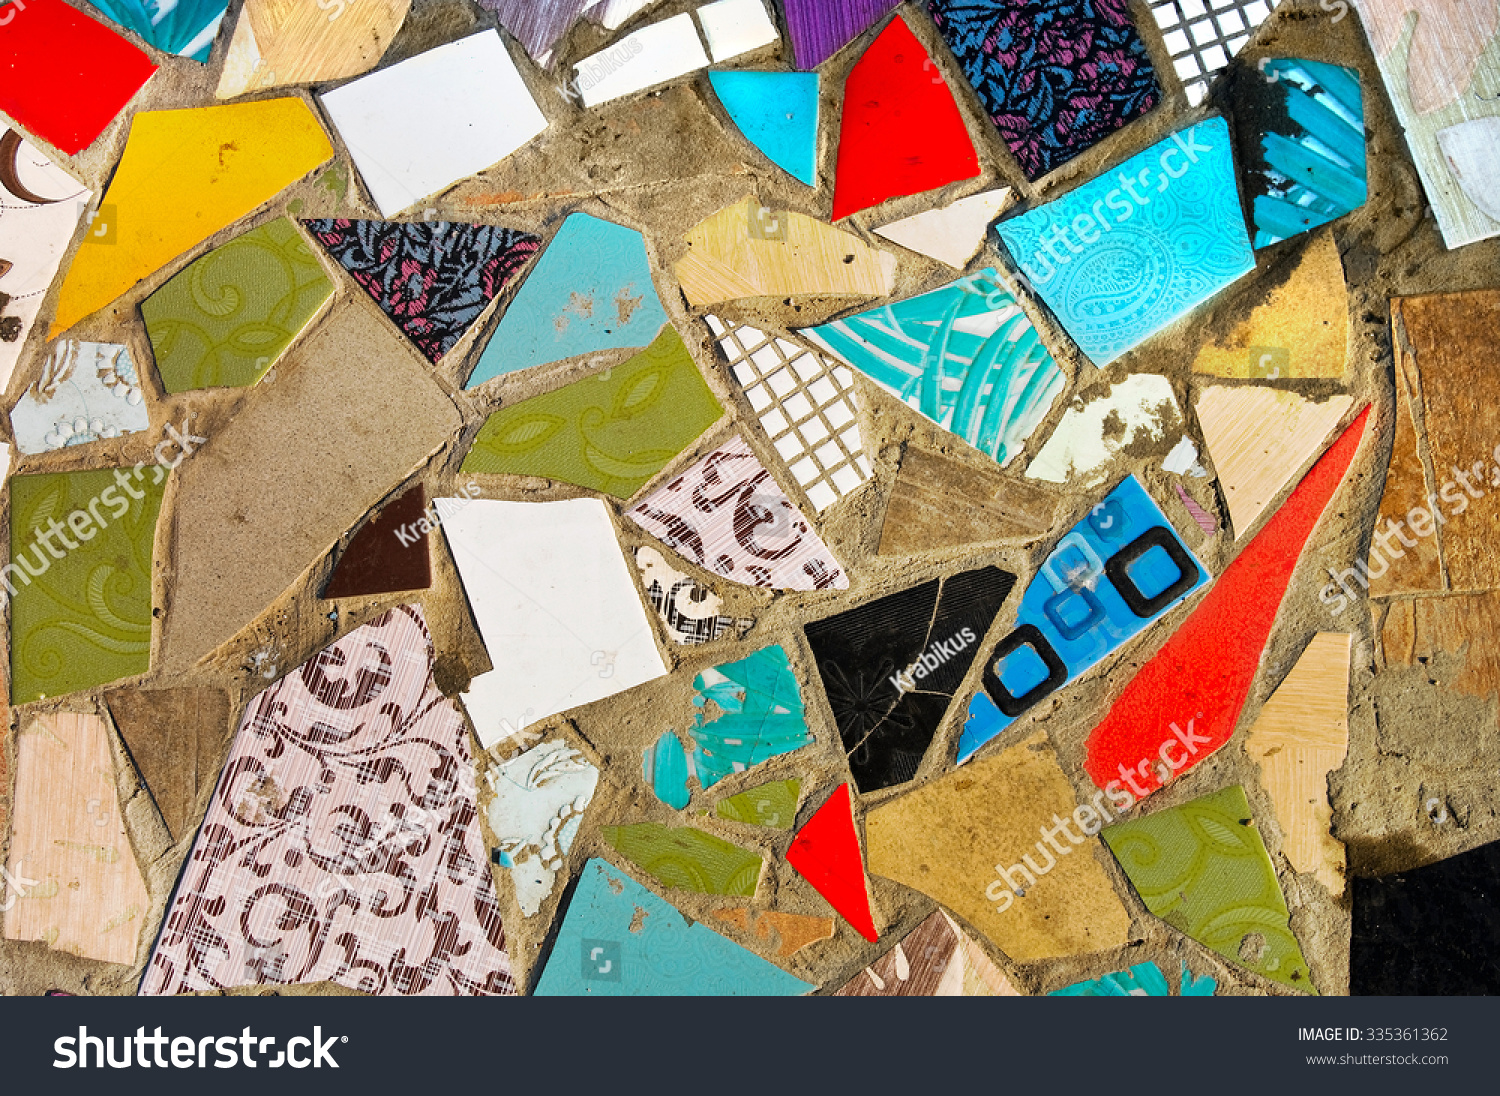 Broken tiles mosaic floor or wall background texture stock photo - Old Abstract Texture Colorful Mosaic On Stock Photo